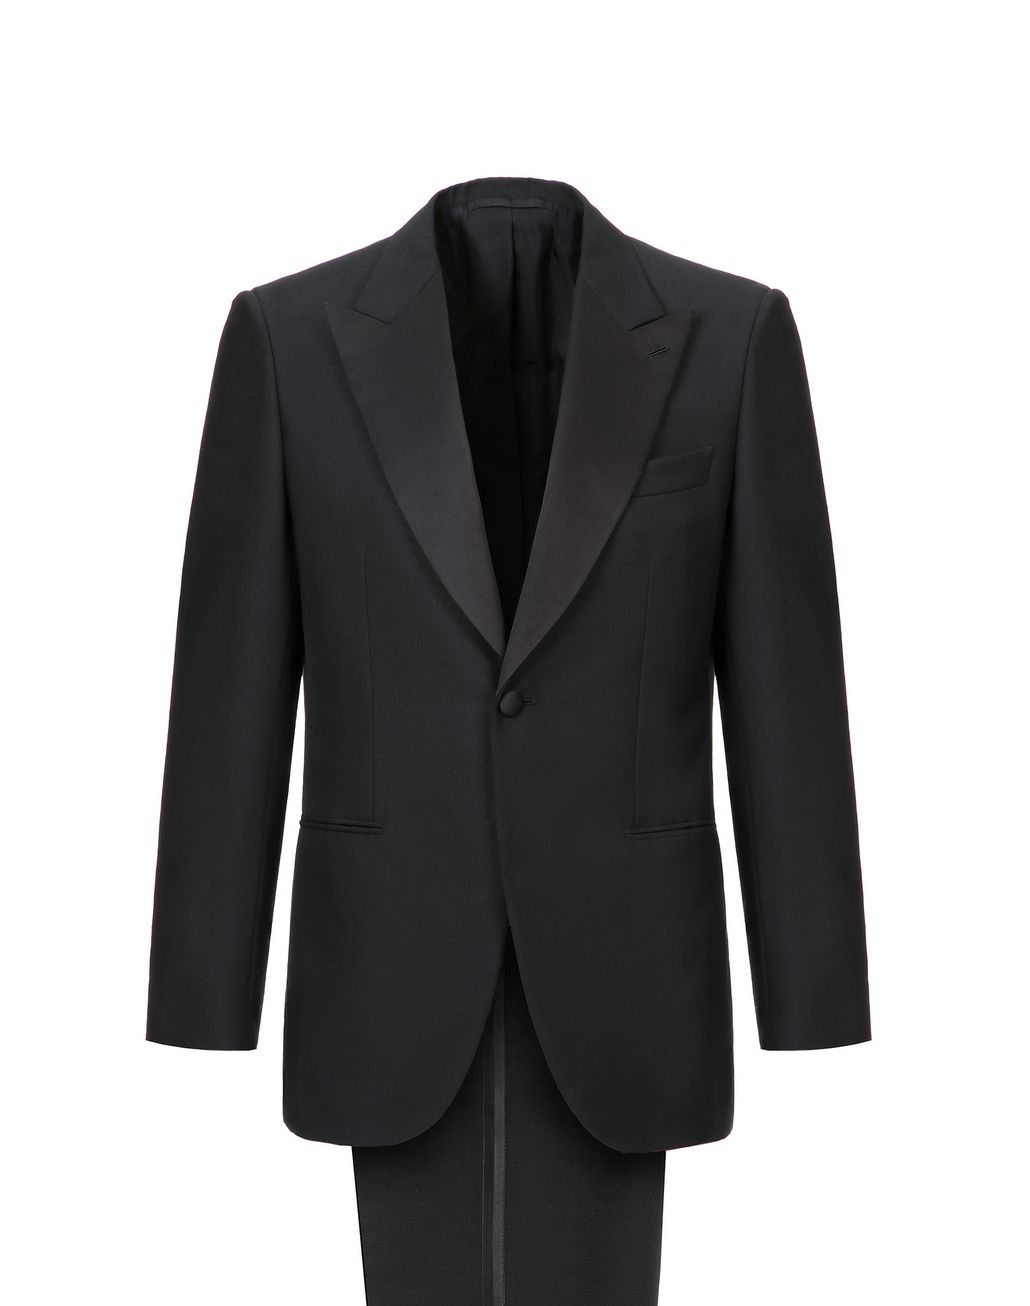 BRIONI Black Parioli Tuxedo Suit  Suits & Jackets Uomo f